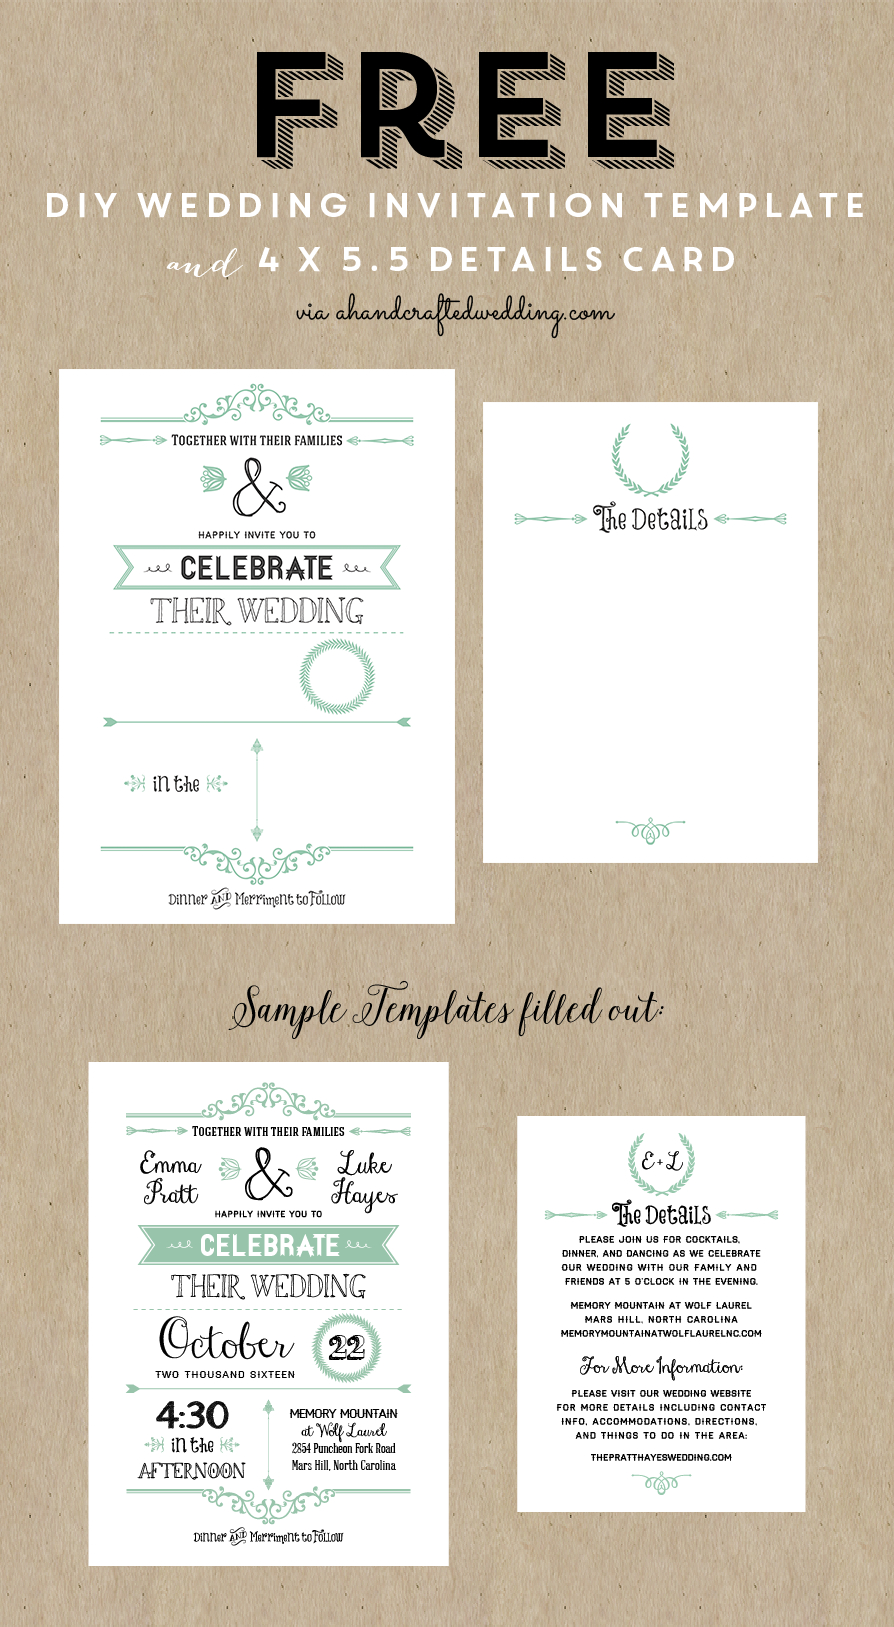 Free Printable Wedding Invitation Template | Wedding | Pinterest - Free Printable Wedding Invitation Templates